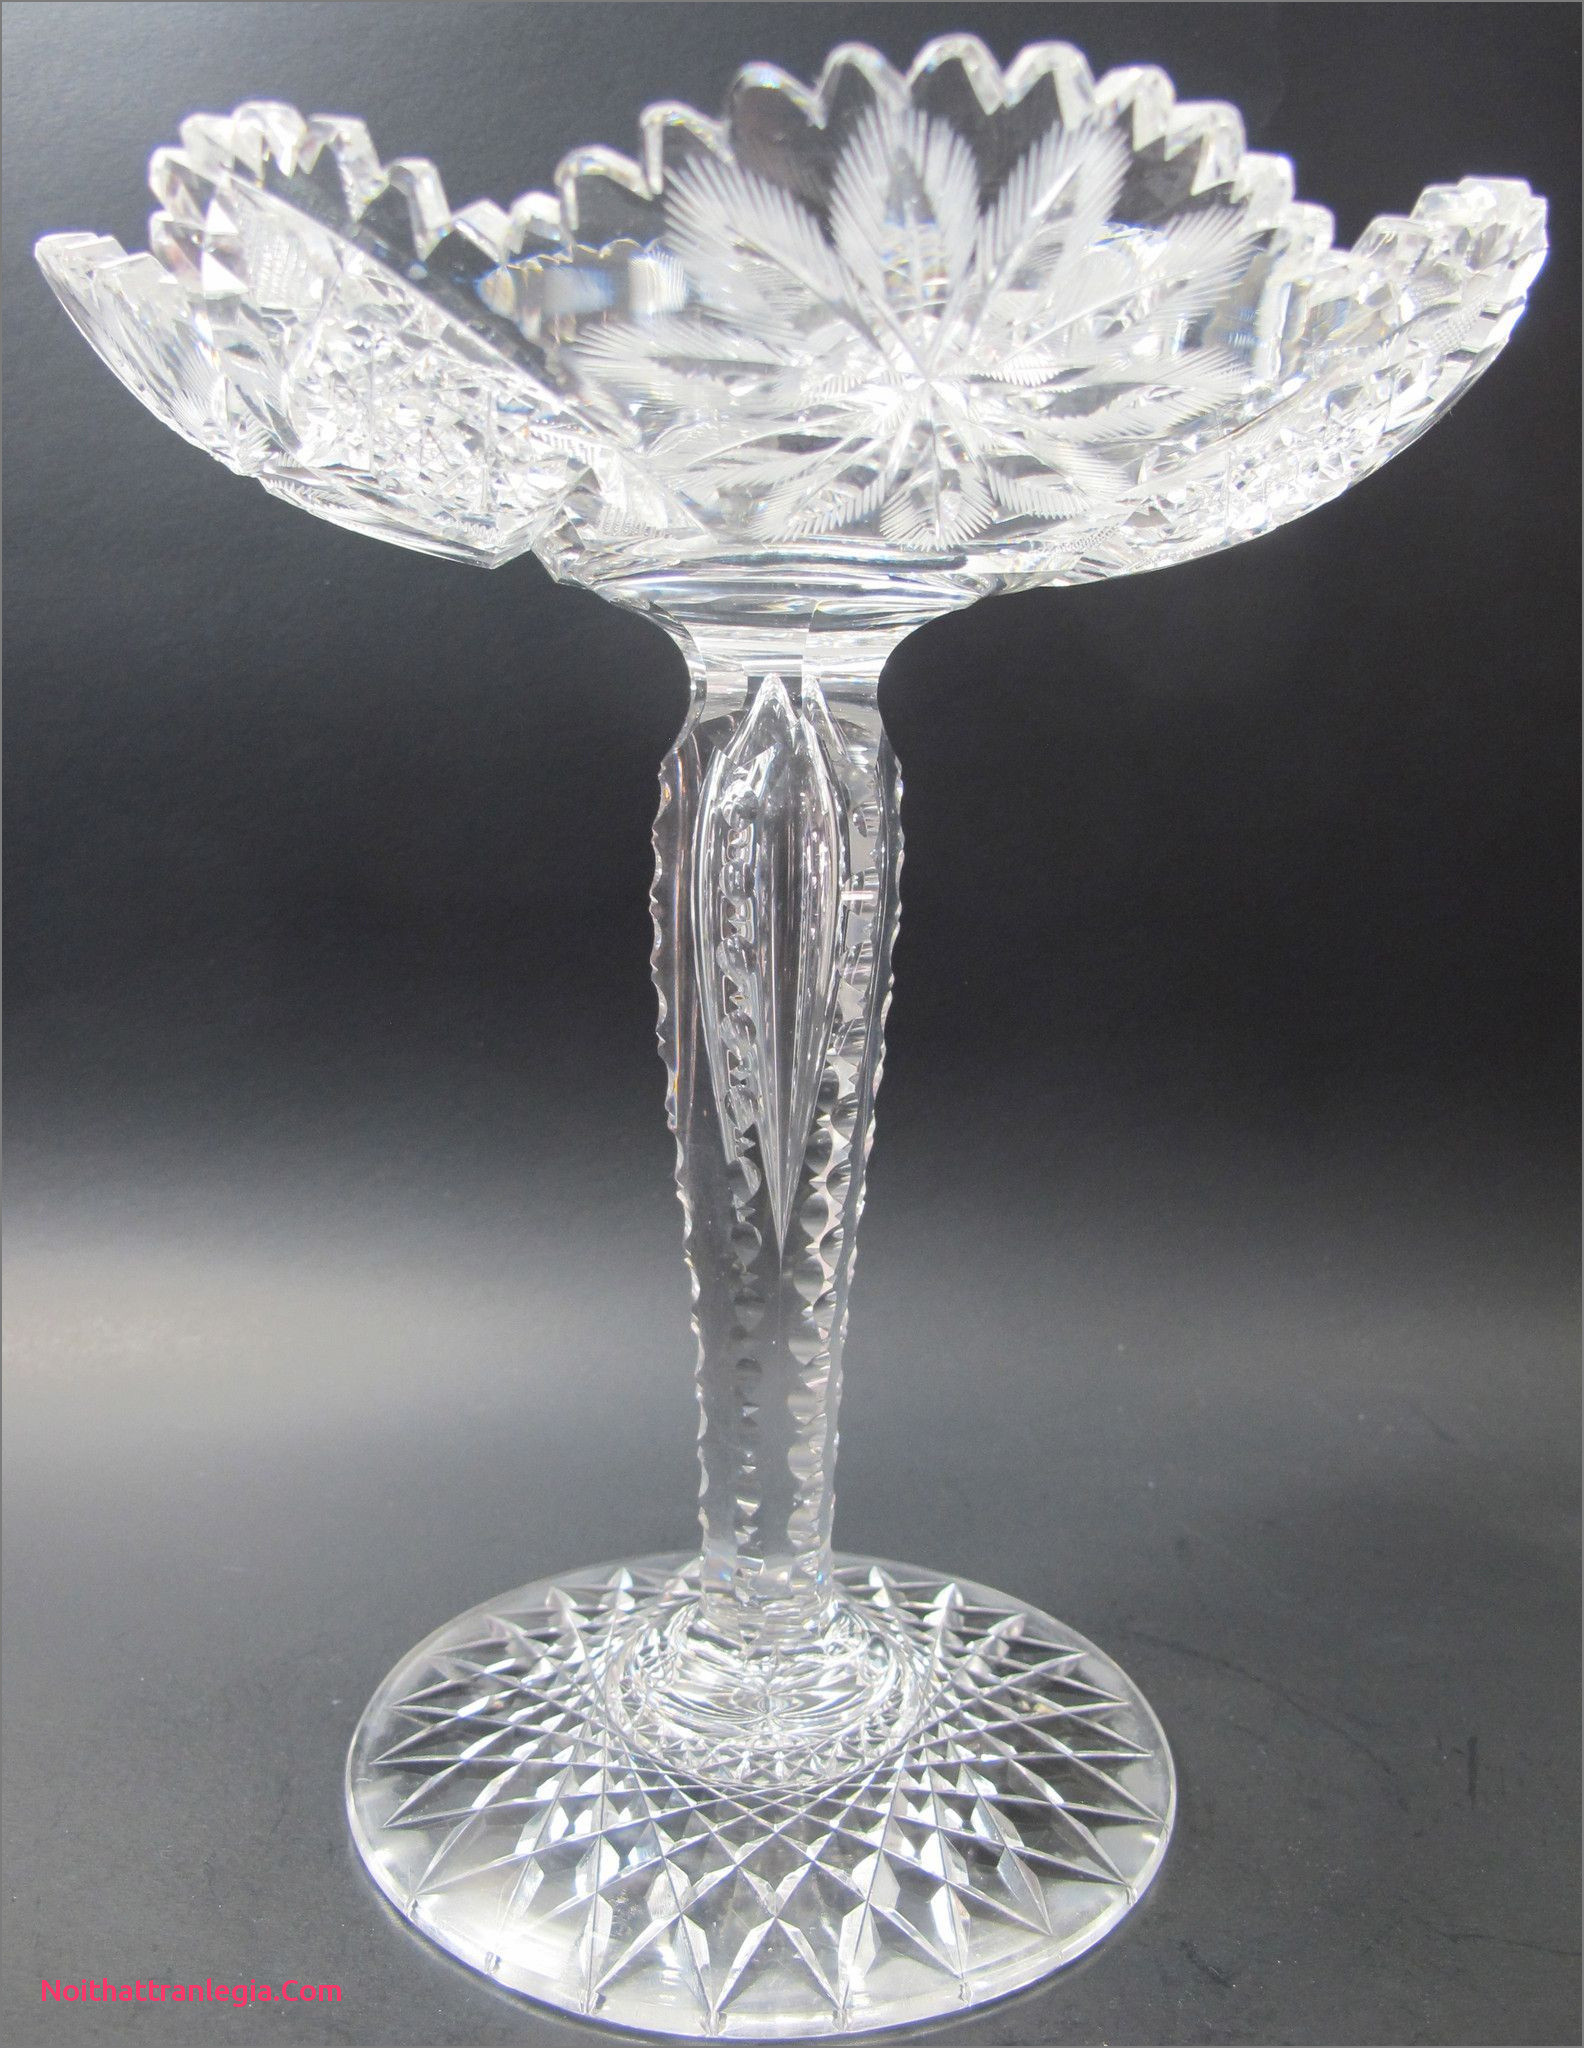 mercury glass footed vase of 20 cut glass antique vase noithattranlegia vases design with regard to fering this abp antique cut glass pote from the american brilliant period 1886 1916 9 5